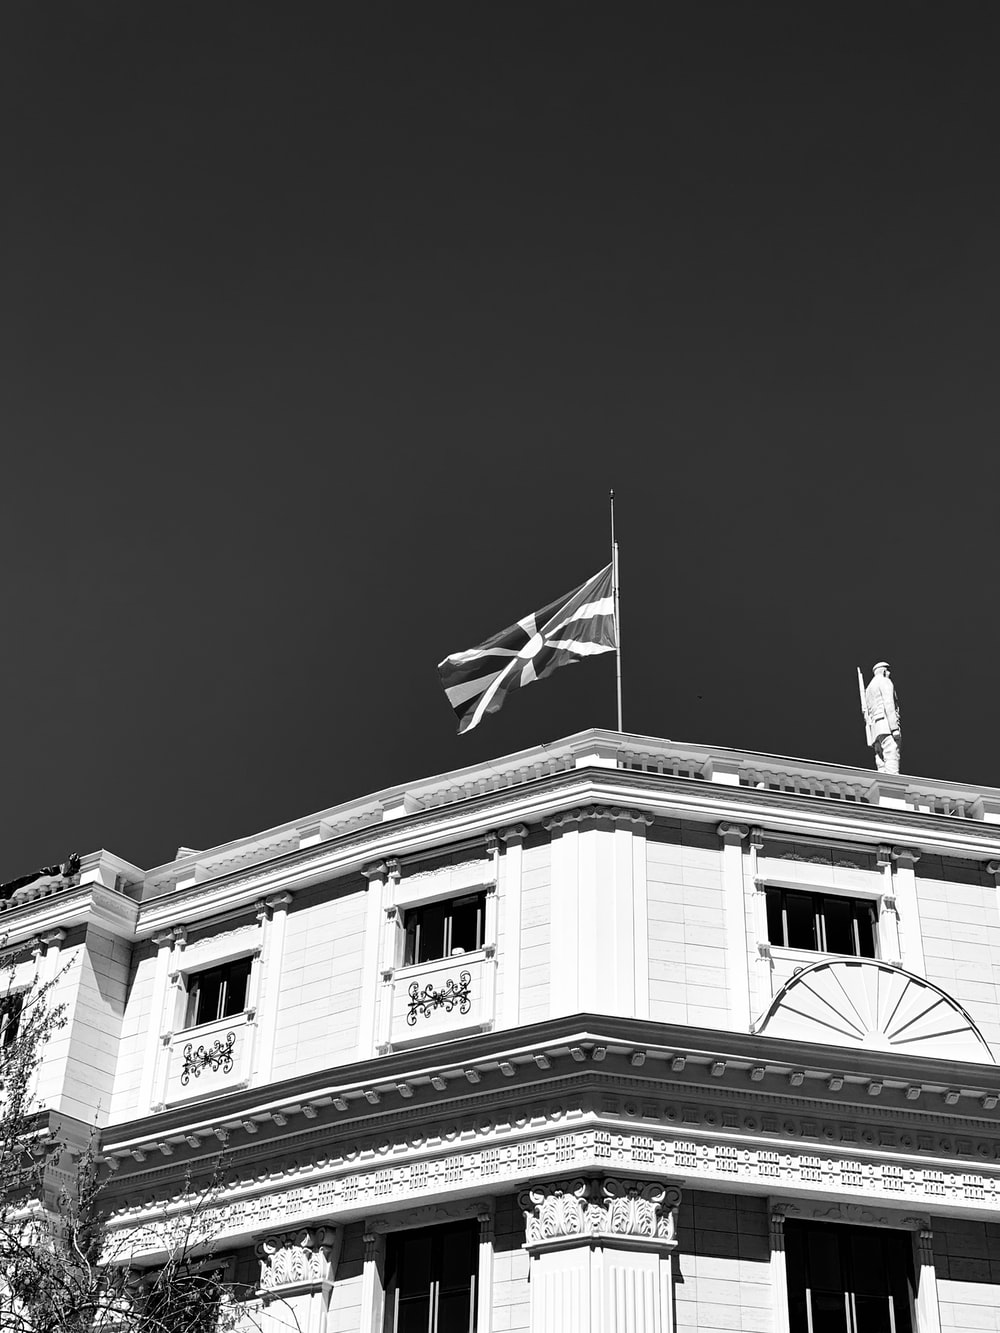 grayscale photo of building with flag on top